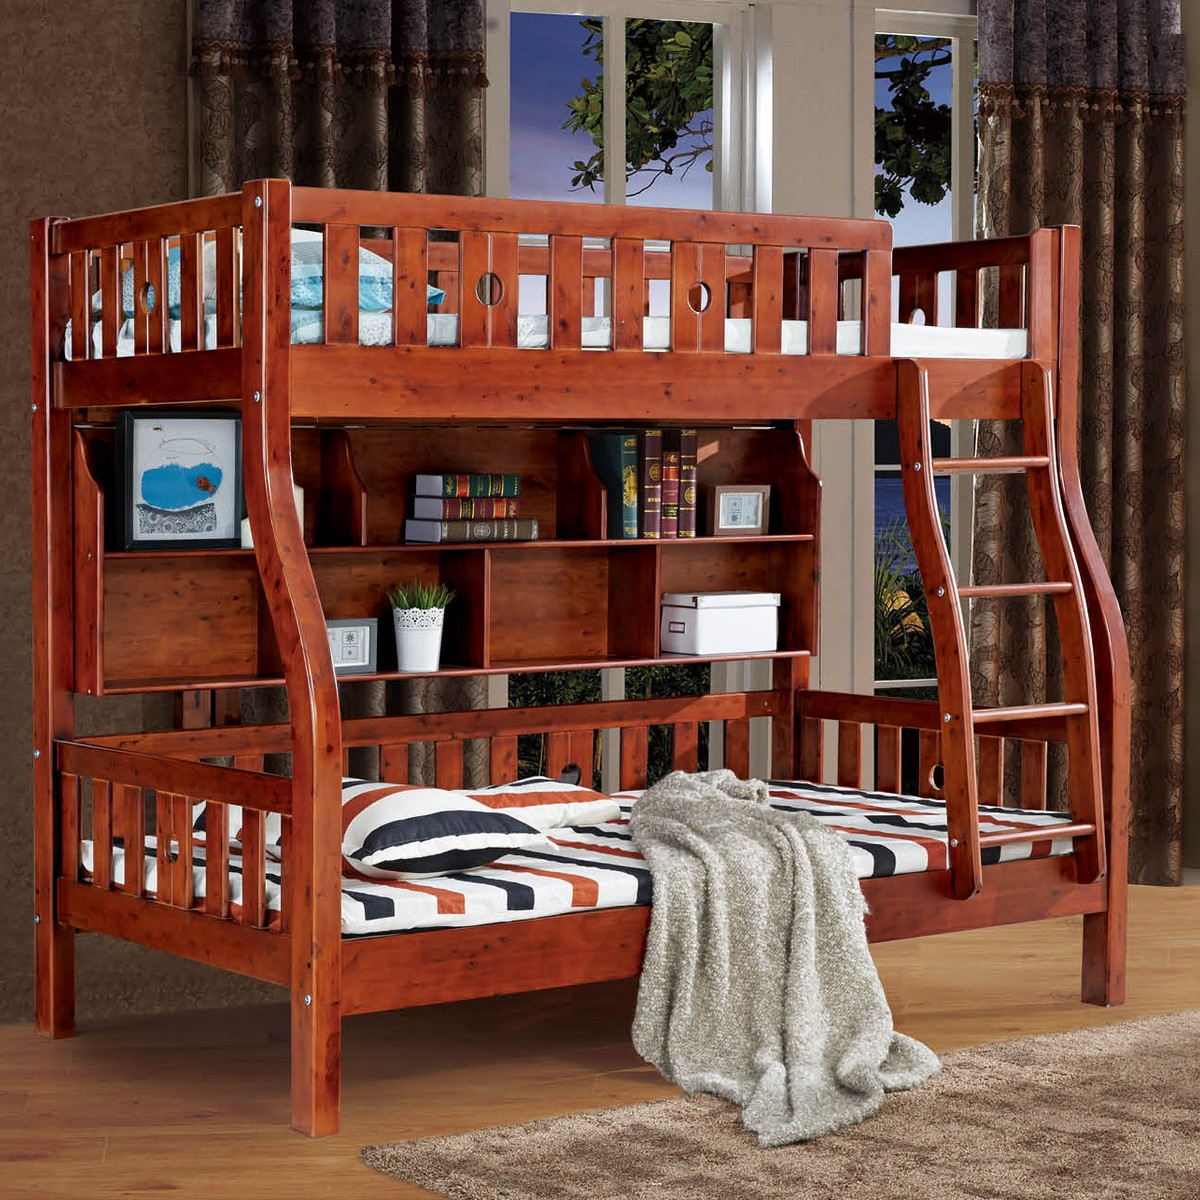 Five Packets Of Home Pure Cedar Wood Children Step Ladder Bunk Bed Picture With Bookshelf In Price On M Alibaba